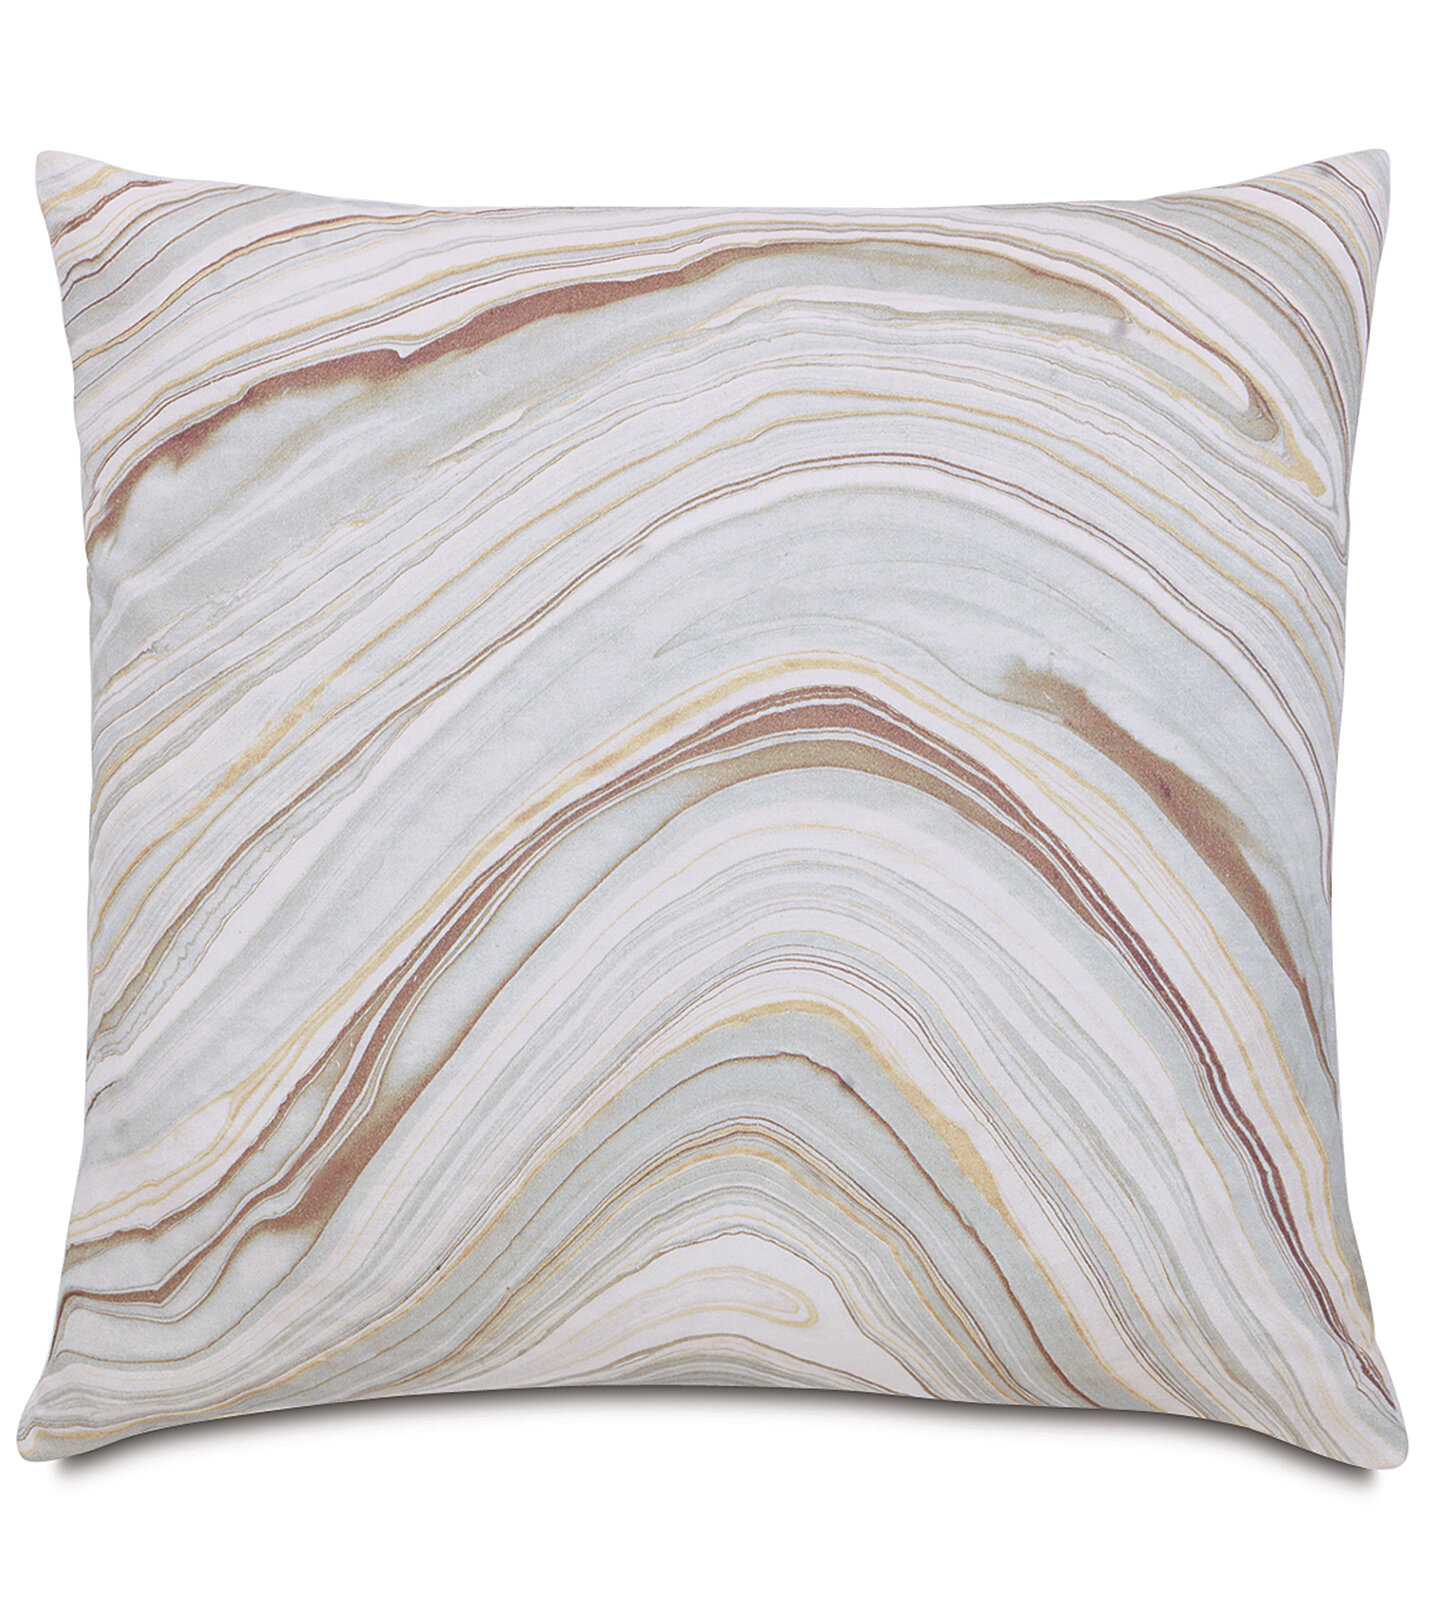 Eastern Accents Geode Luxe Mineral Cotton Abstract Throw Pillow Wayfair